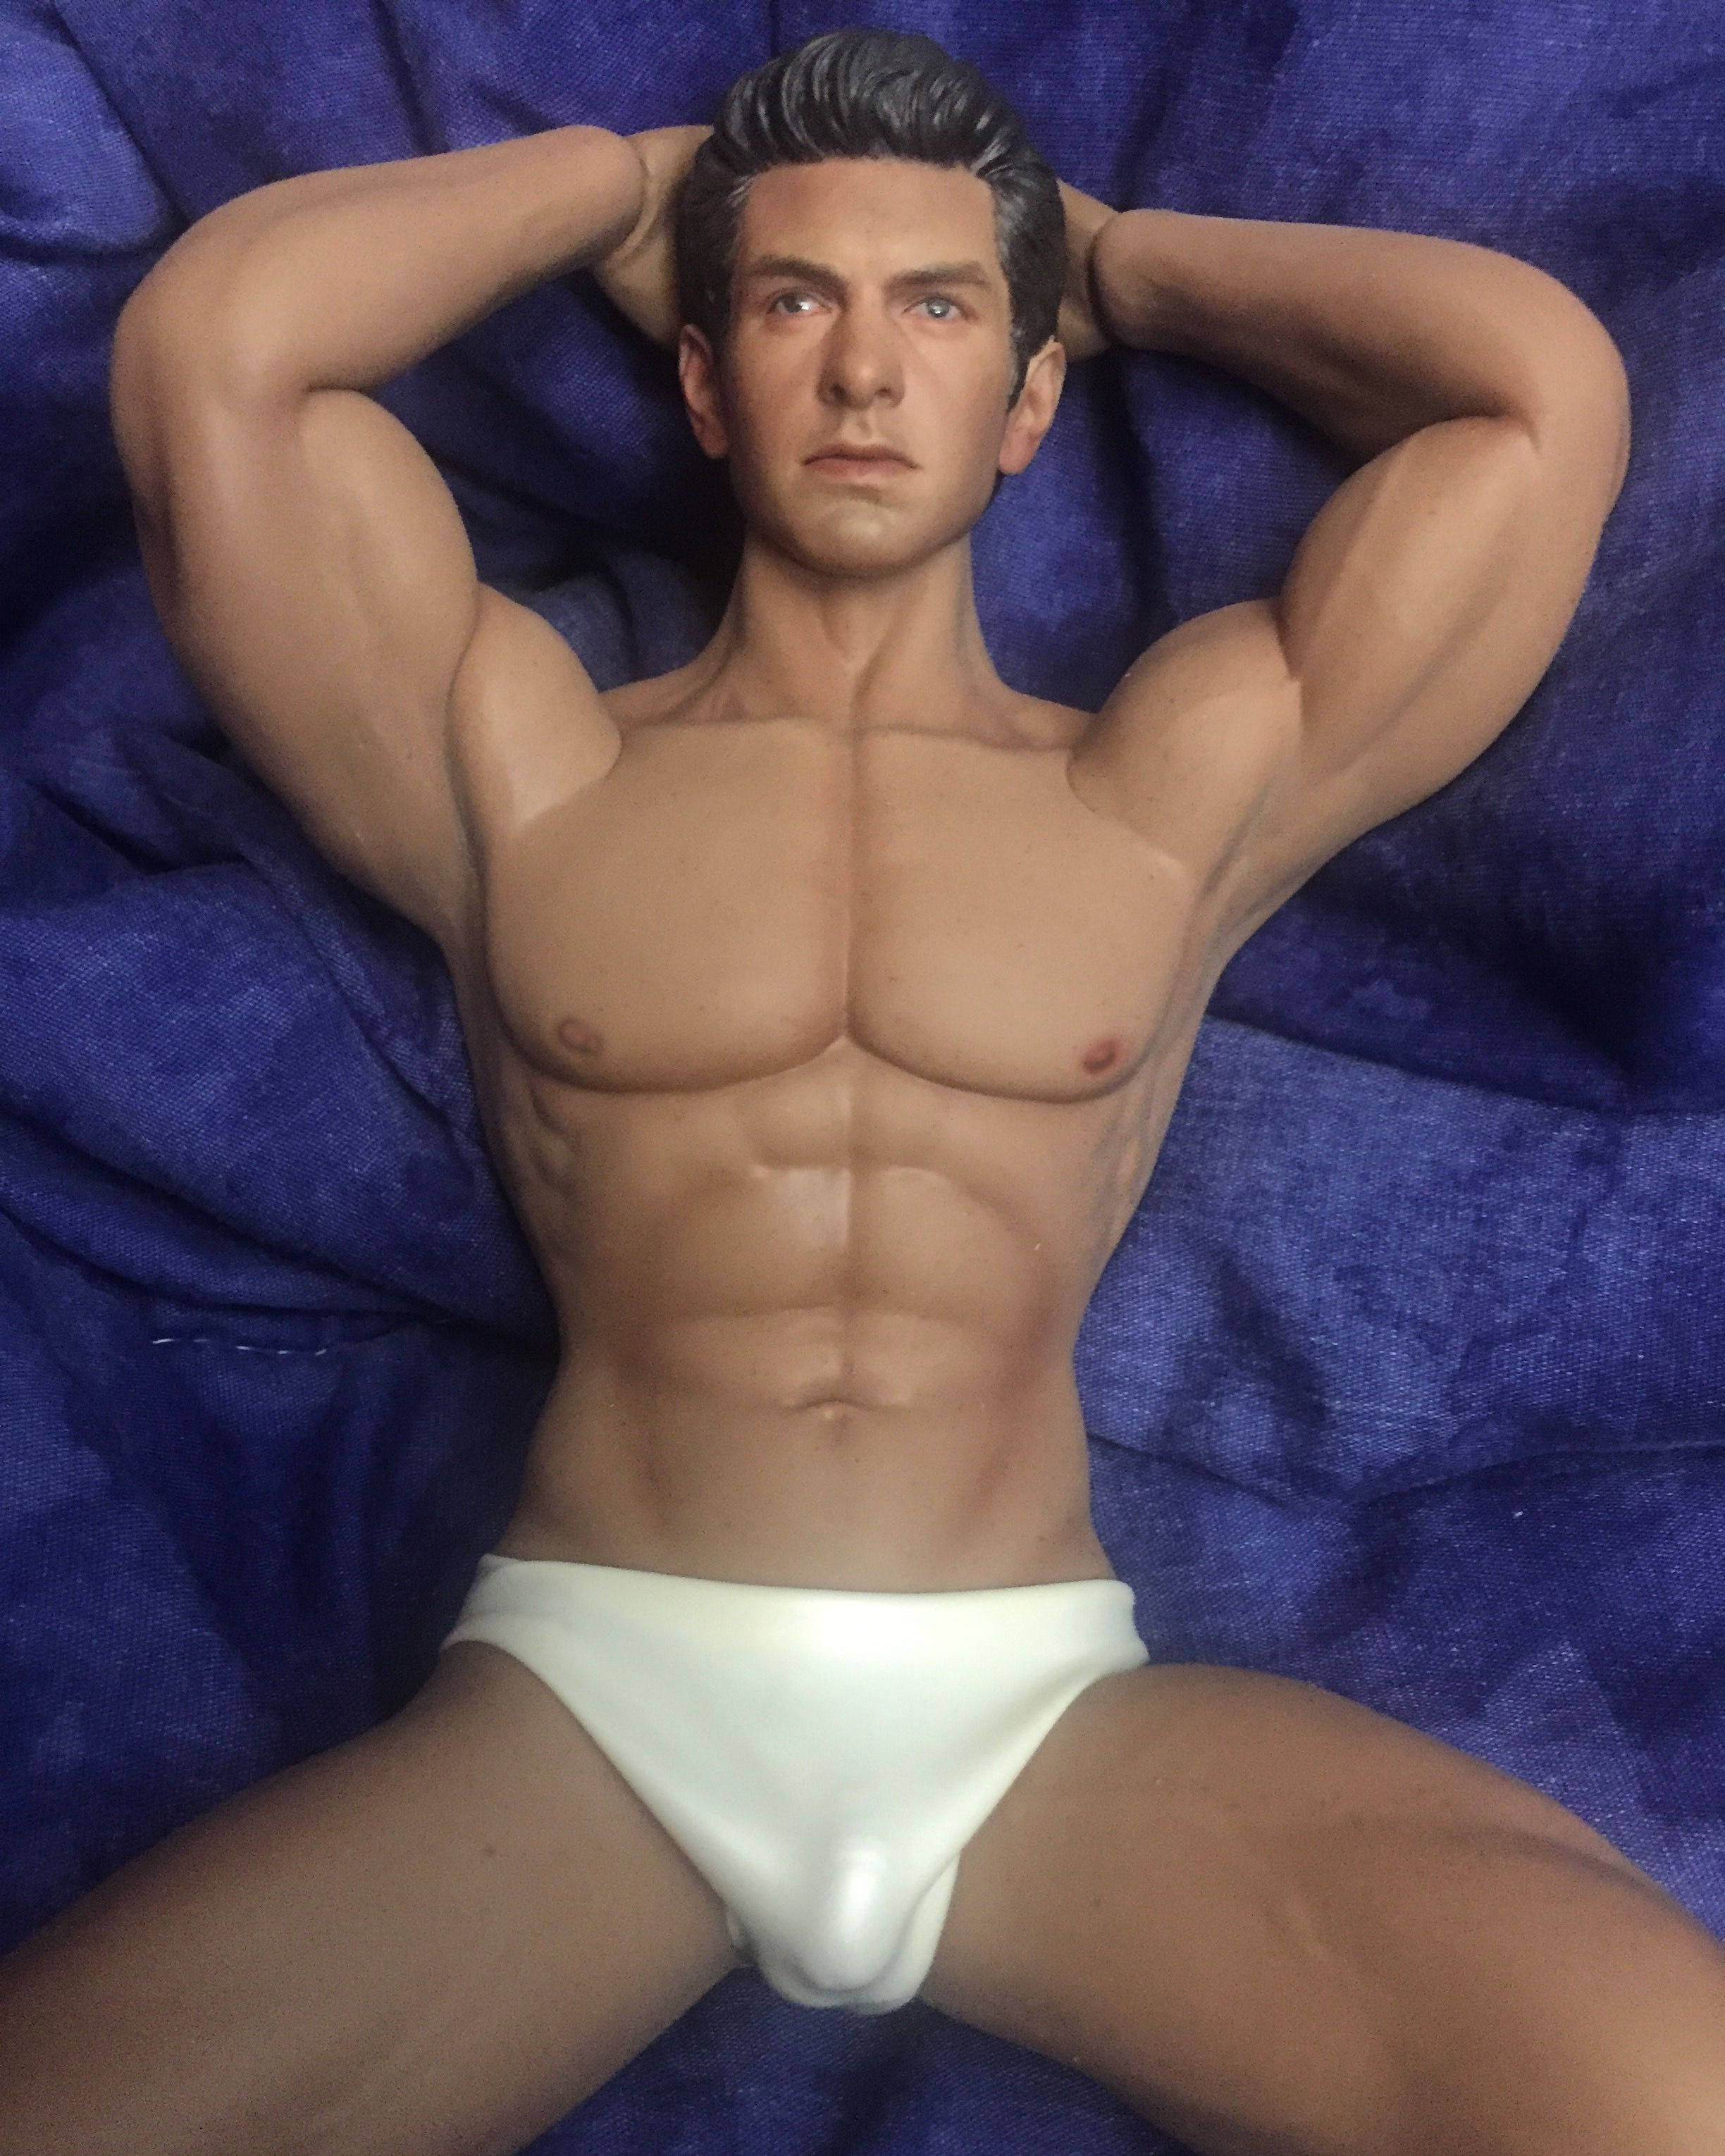 This discontinued gay ken doll will haunt mattel forever